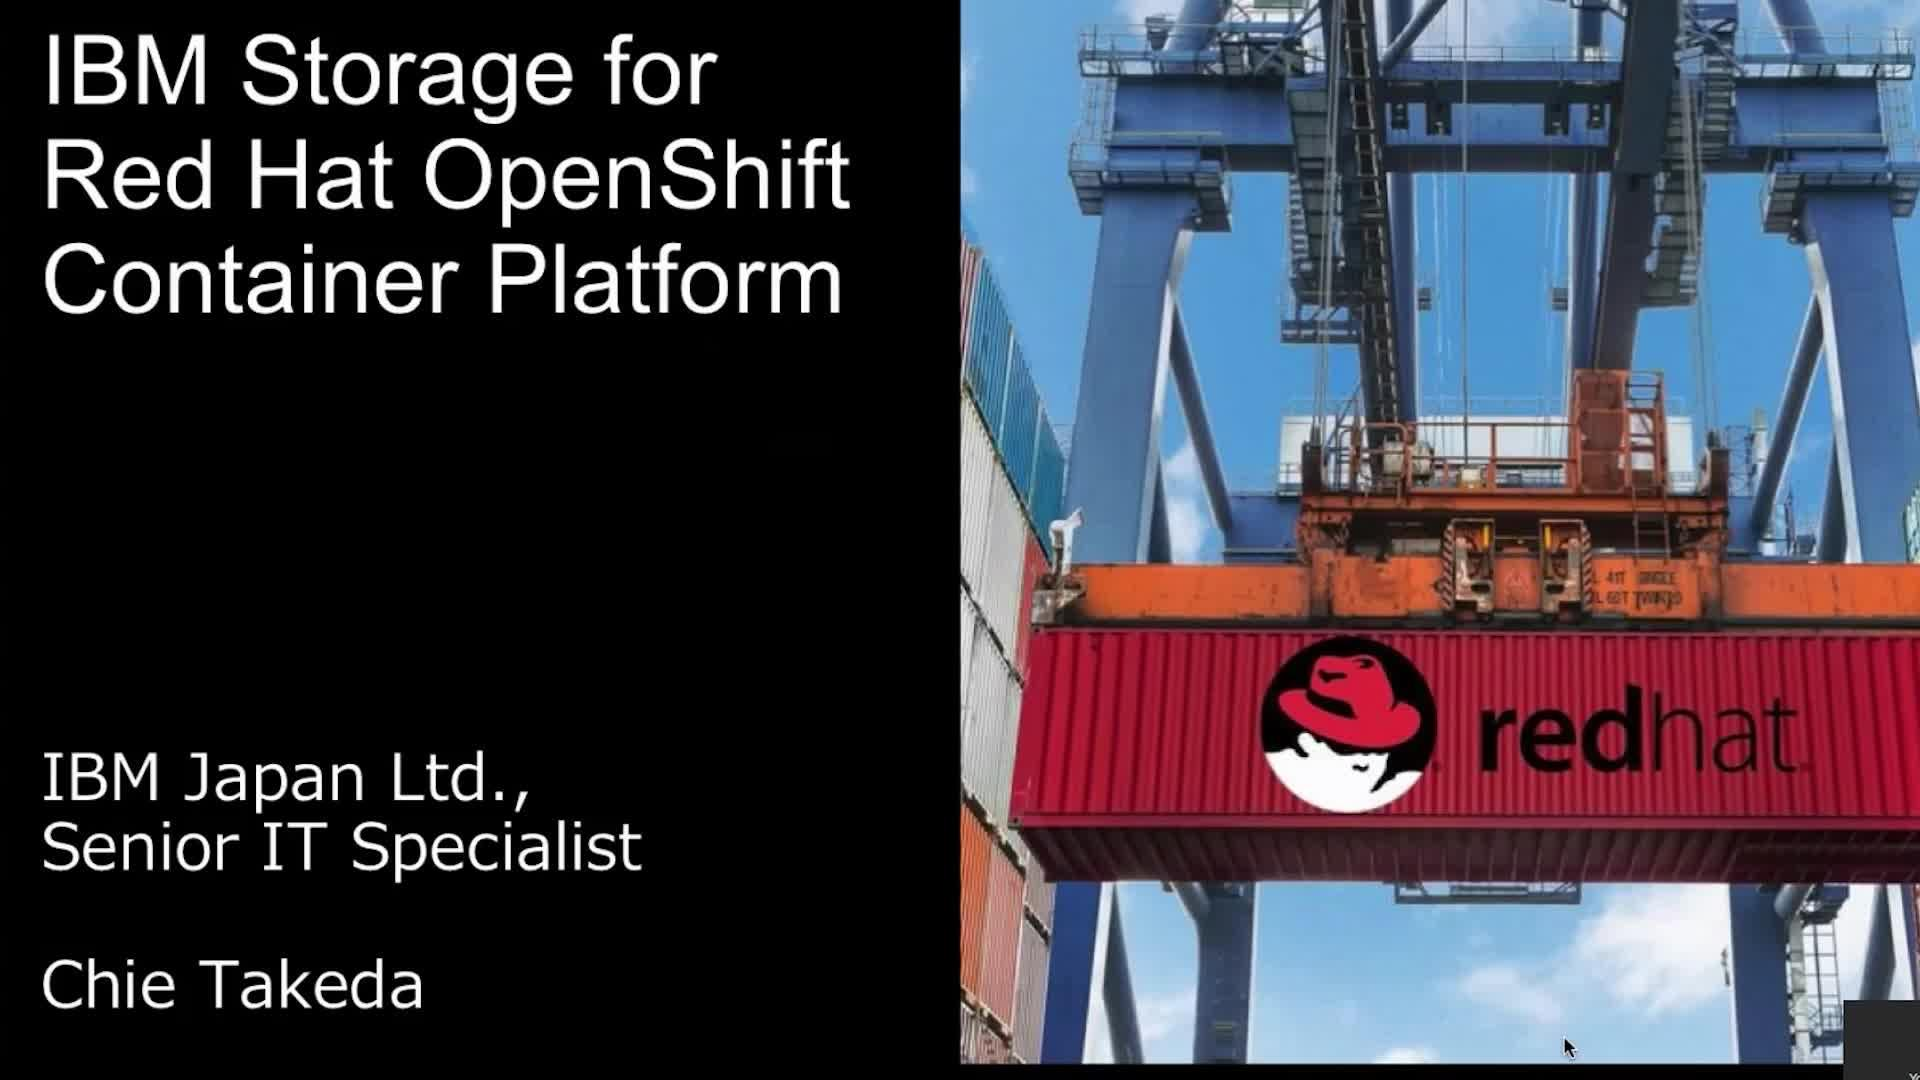 IBM Storage for Red Hat OpenShift Container Platform